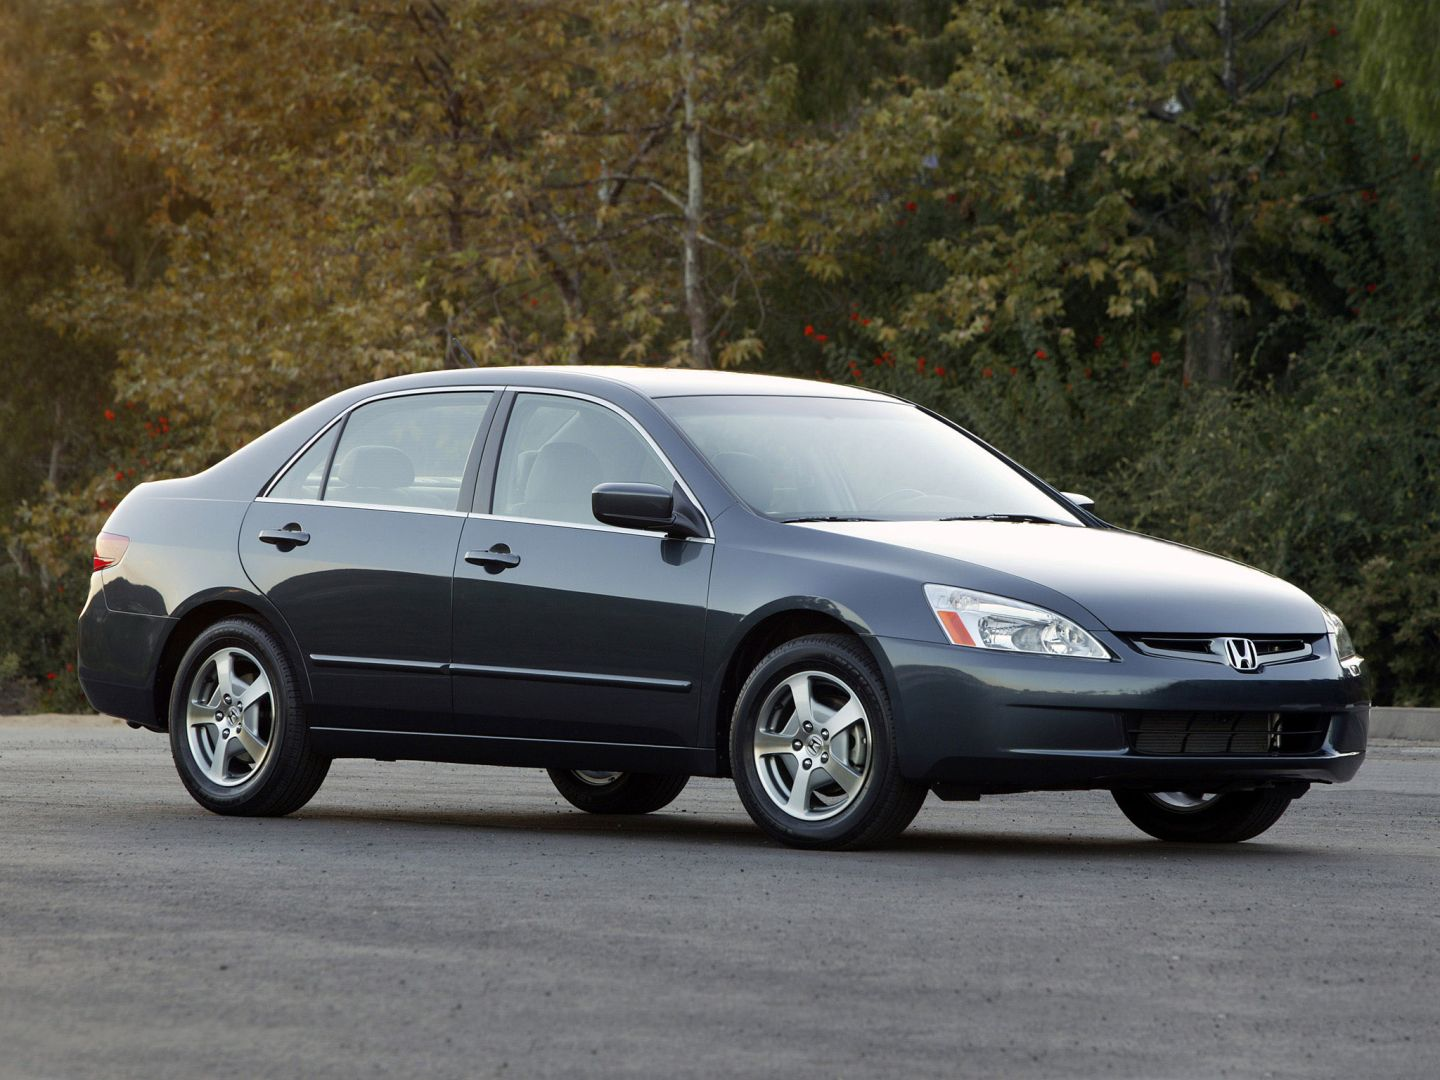 2007 accord owners manual pdf